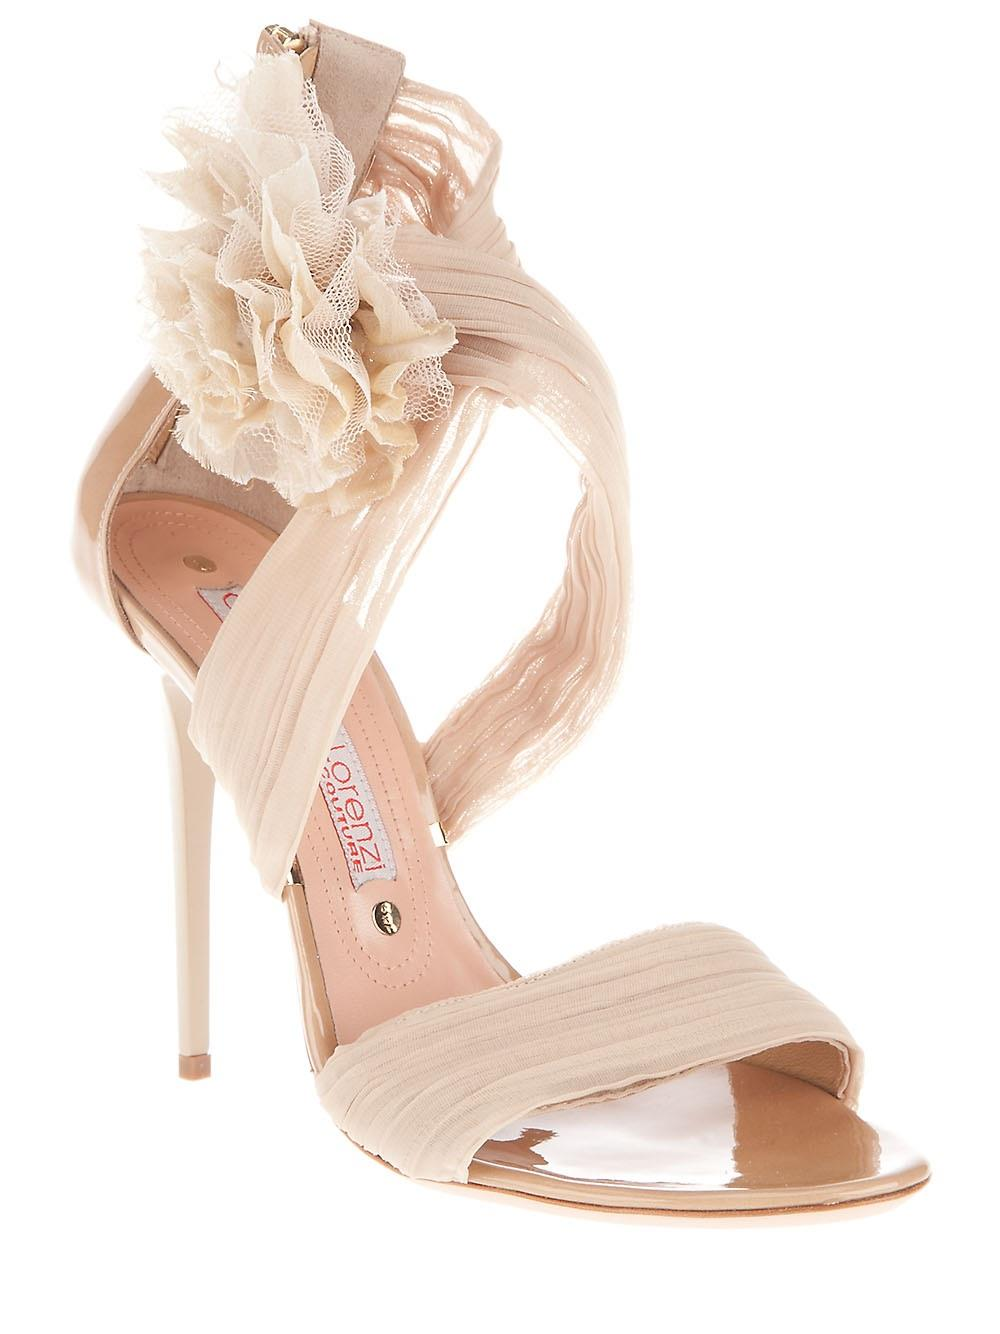 Tuesday Shoesday - Tulle Indian Wedding Shoes